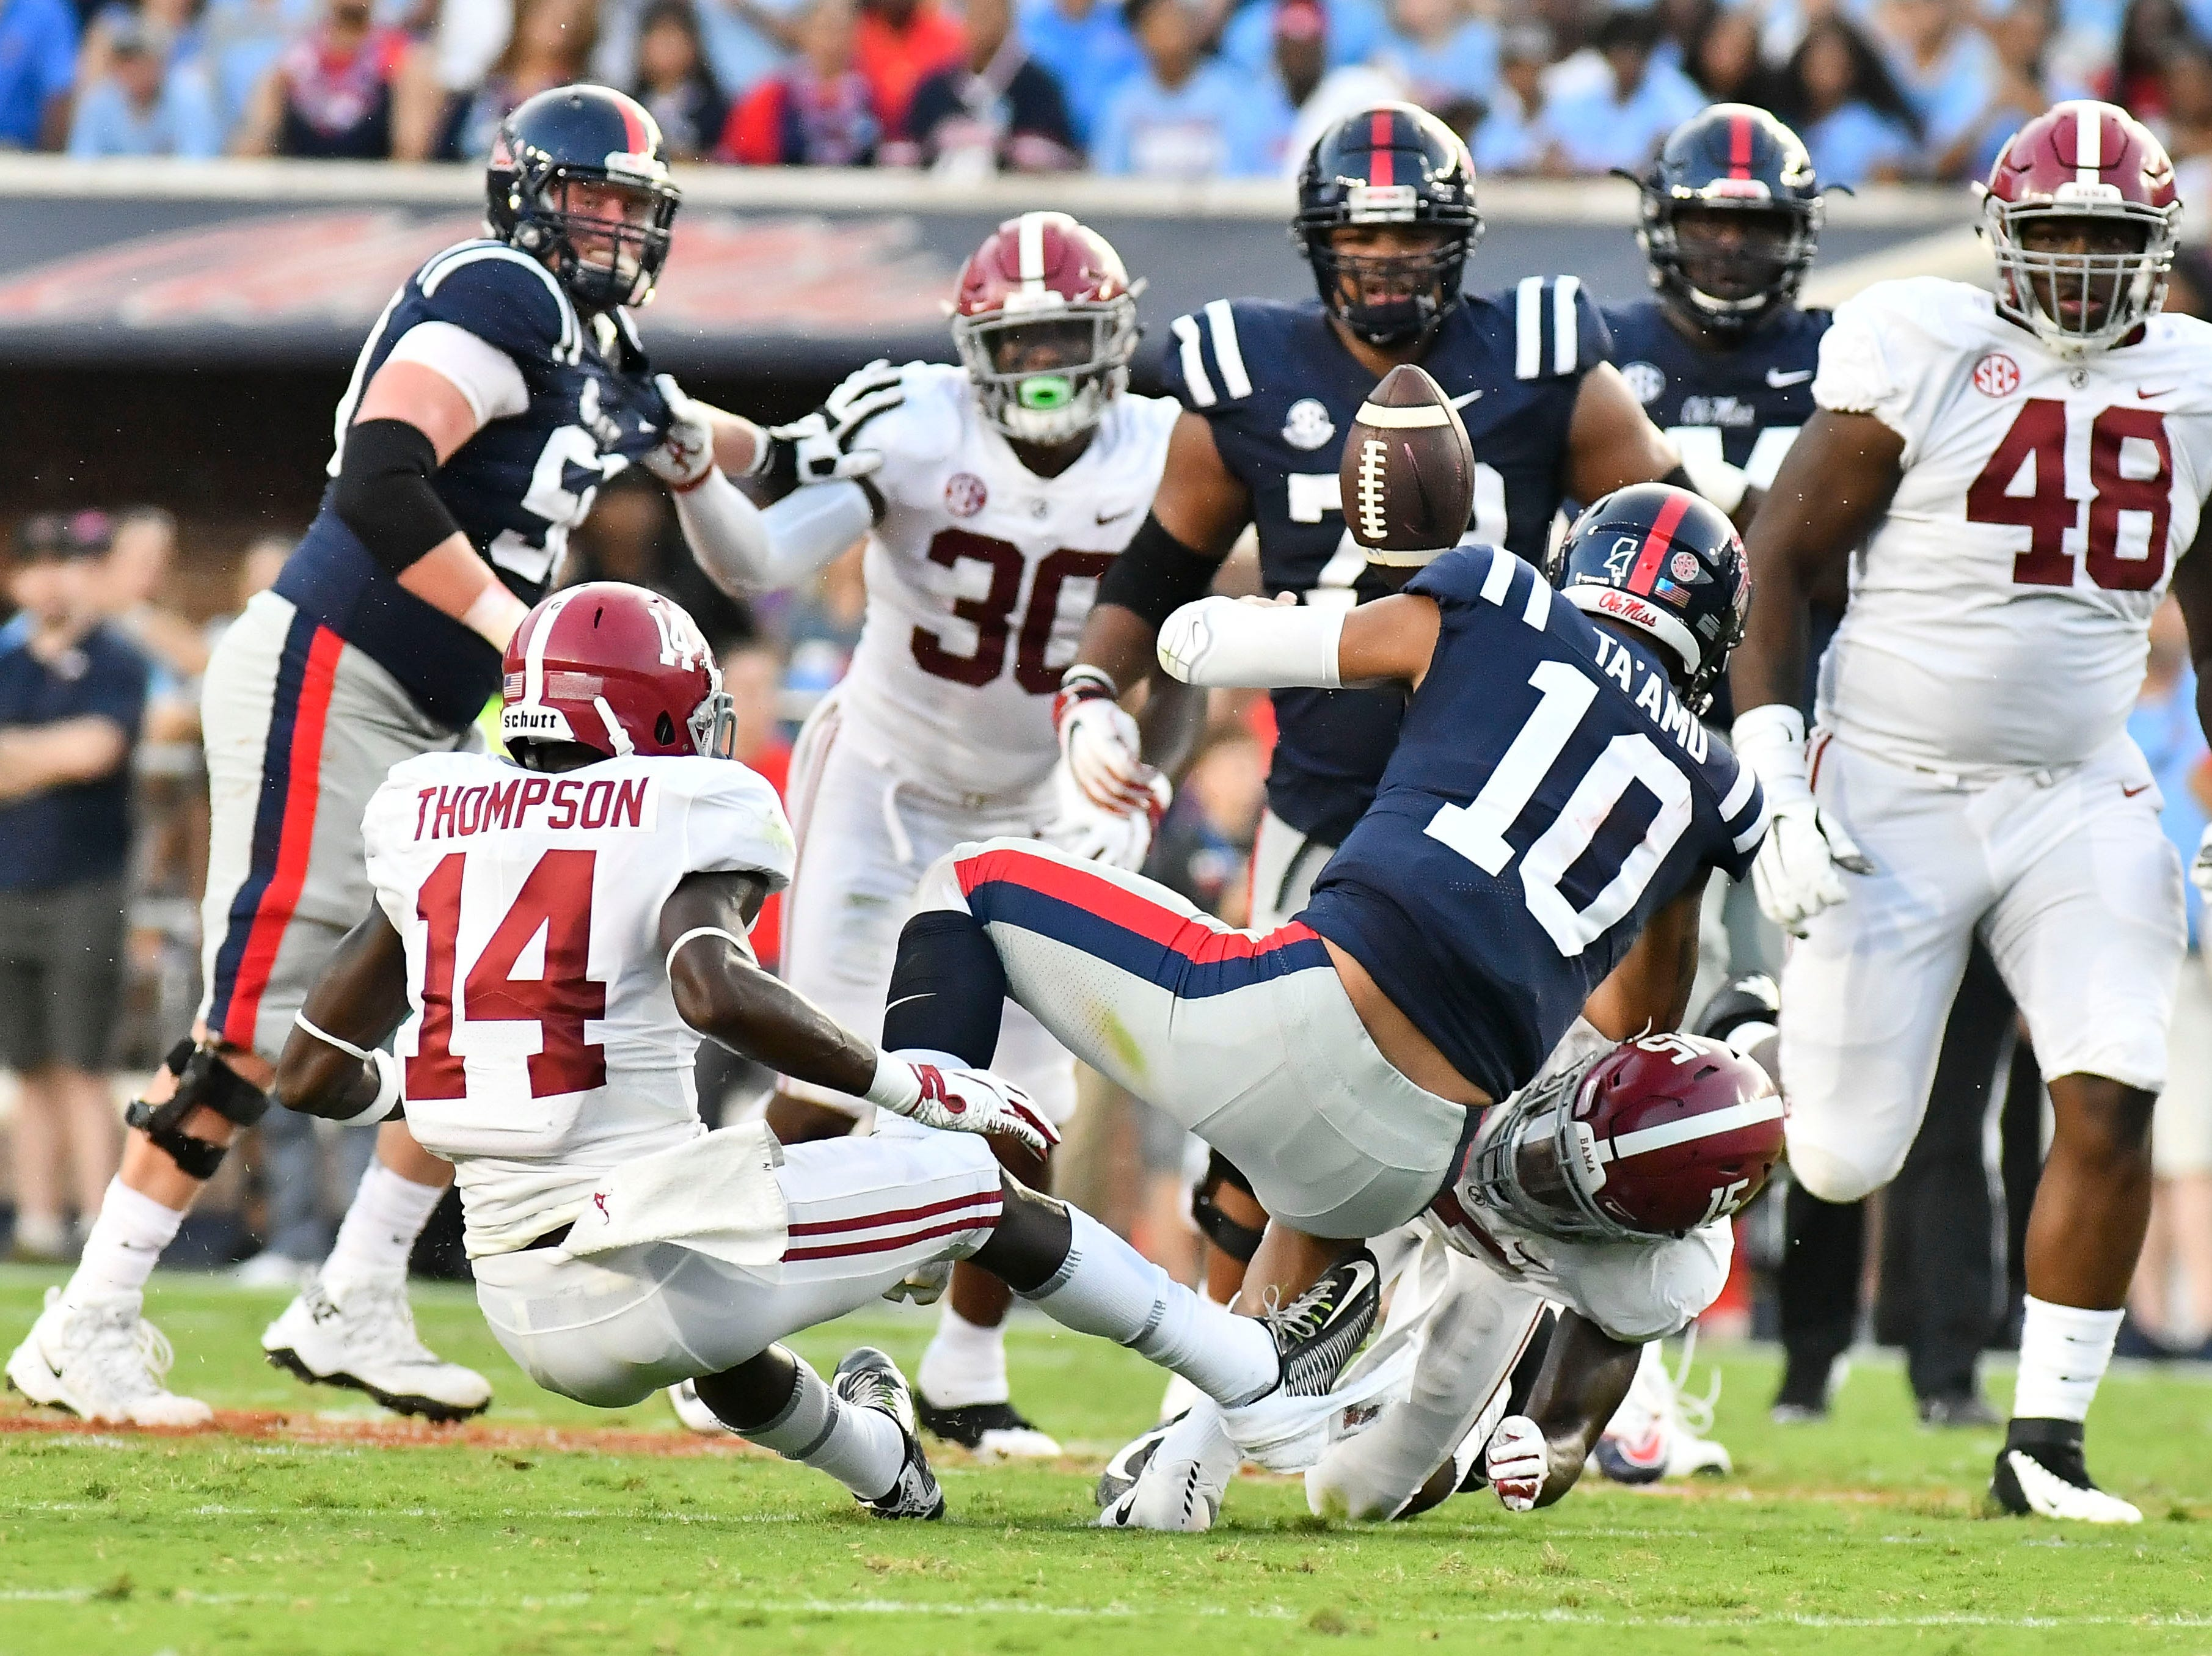 Mississippi Rebels quarterback Jordan Ta'amu (10) fumbles the ball after being hit by Alabama Crimson Tide defensive back Xavier McKinney (15) during the first quarter at Vaught-Hemingway Stadium.